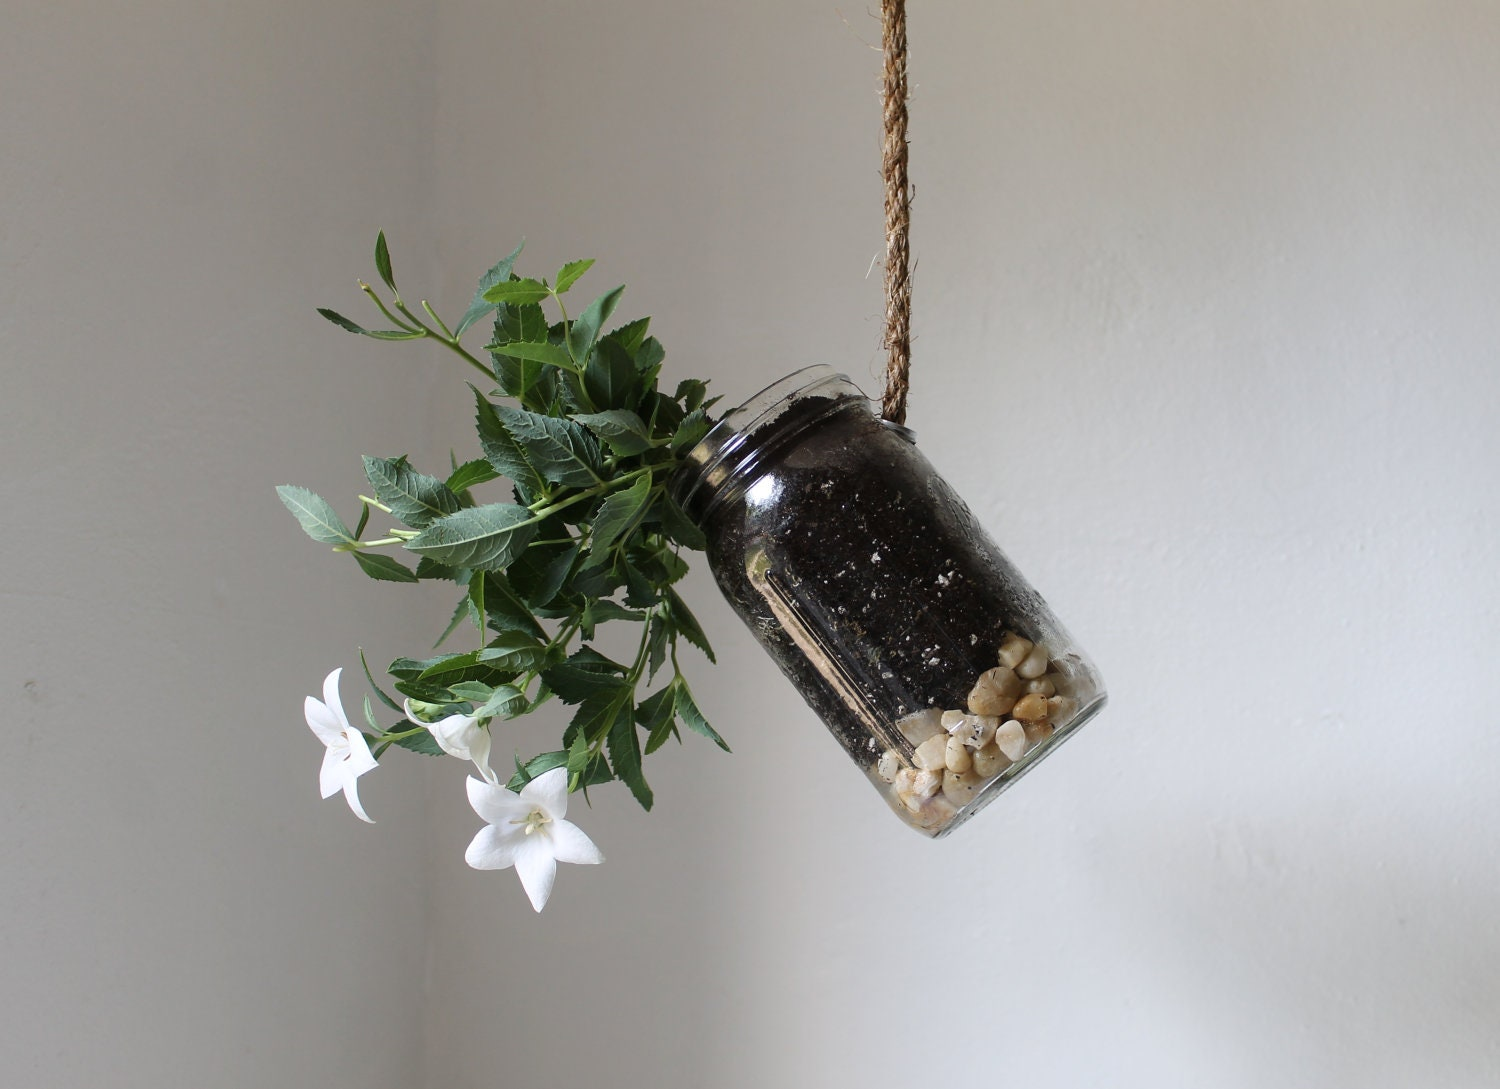 Hanging Mason Jar Planter with drainage - Upcycled home & garden decor - Quart Sized Ball Jar herb and flower planter - BootsNGus design - BootsNGus